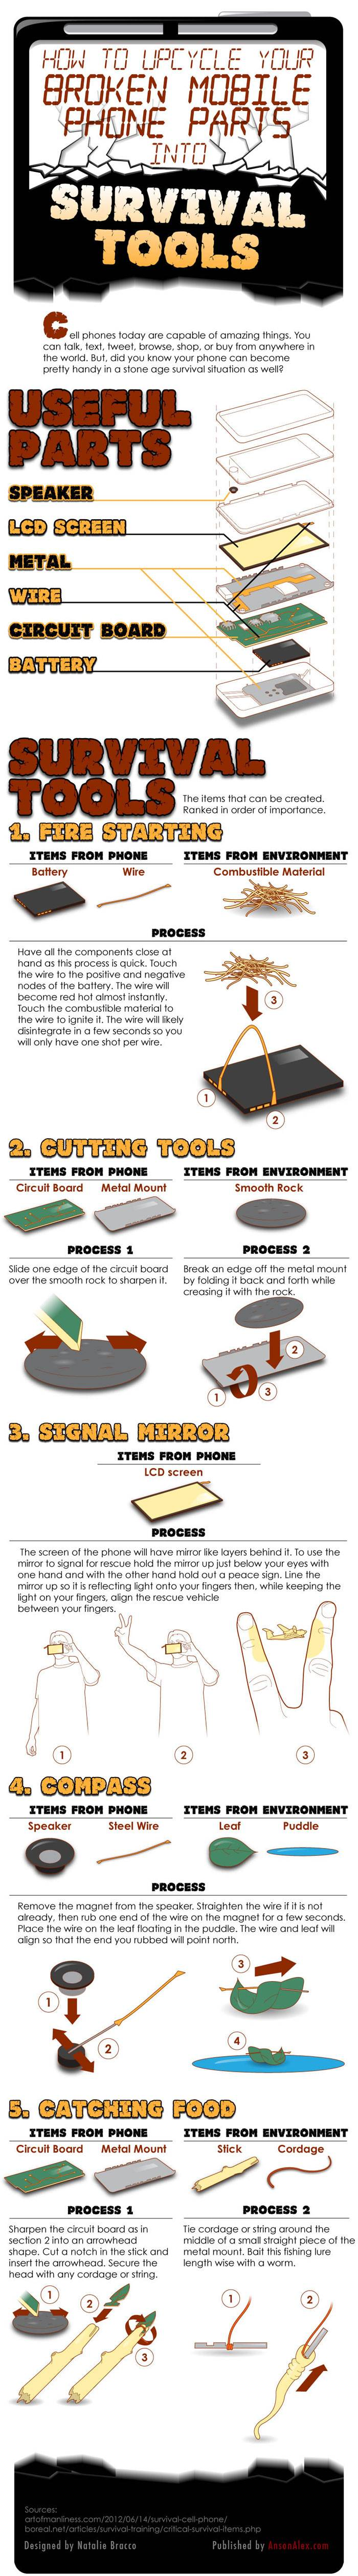 Turn Phone Into A Survival Tool Infograph